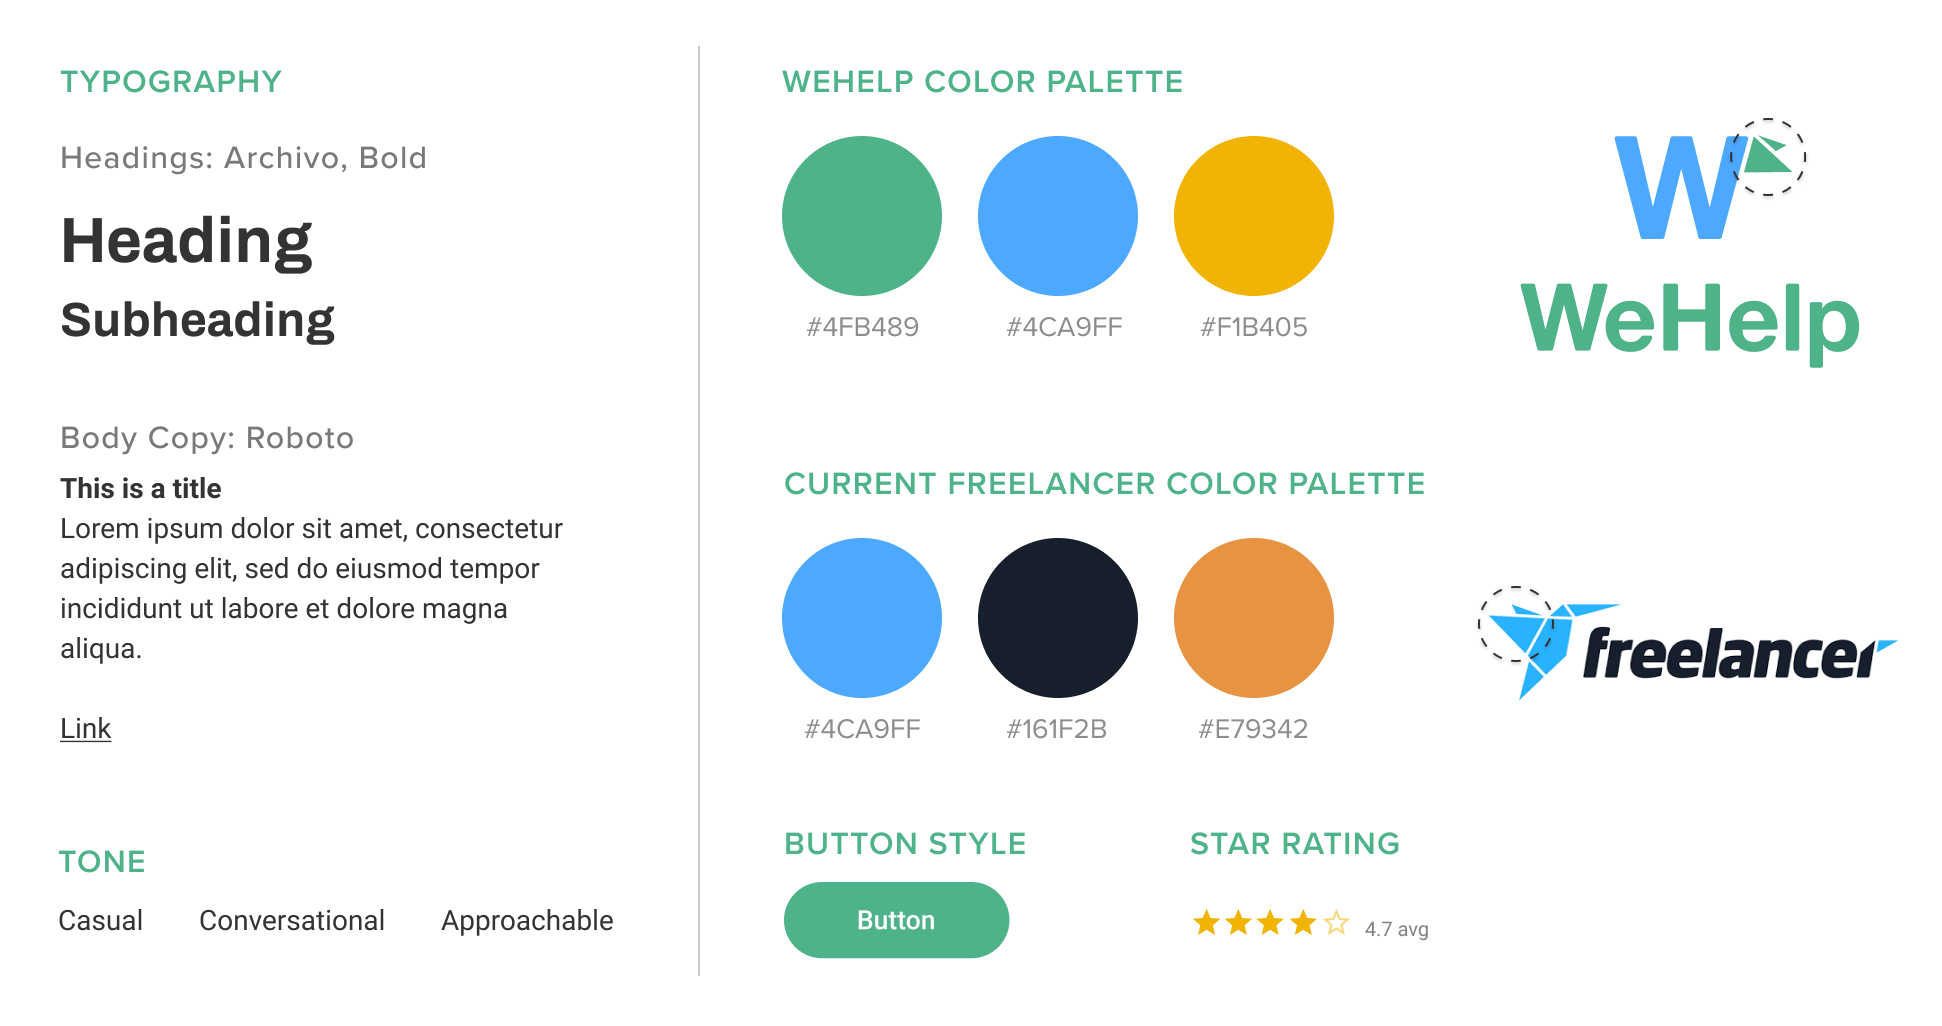 Image of a style guide for WeHelp